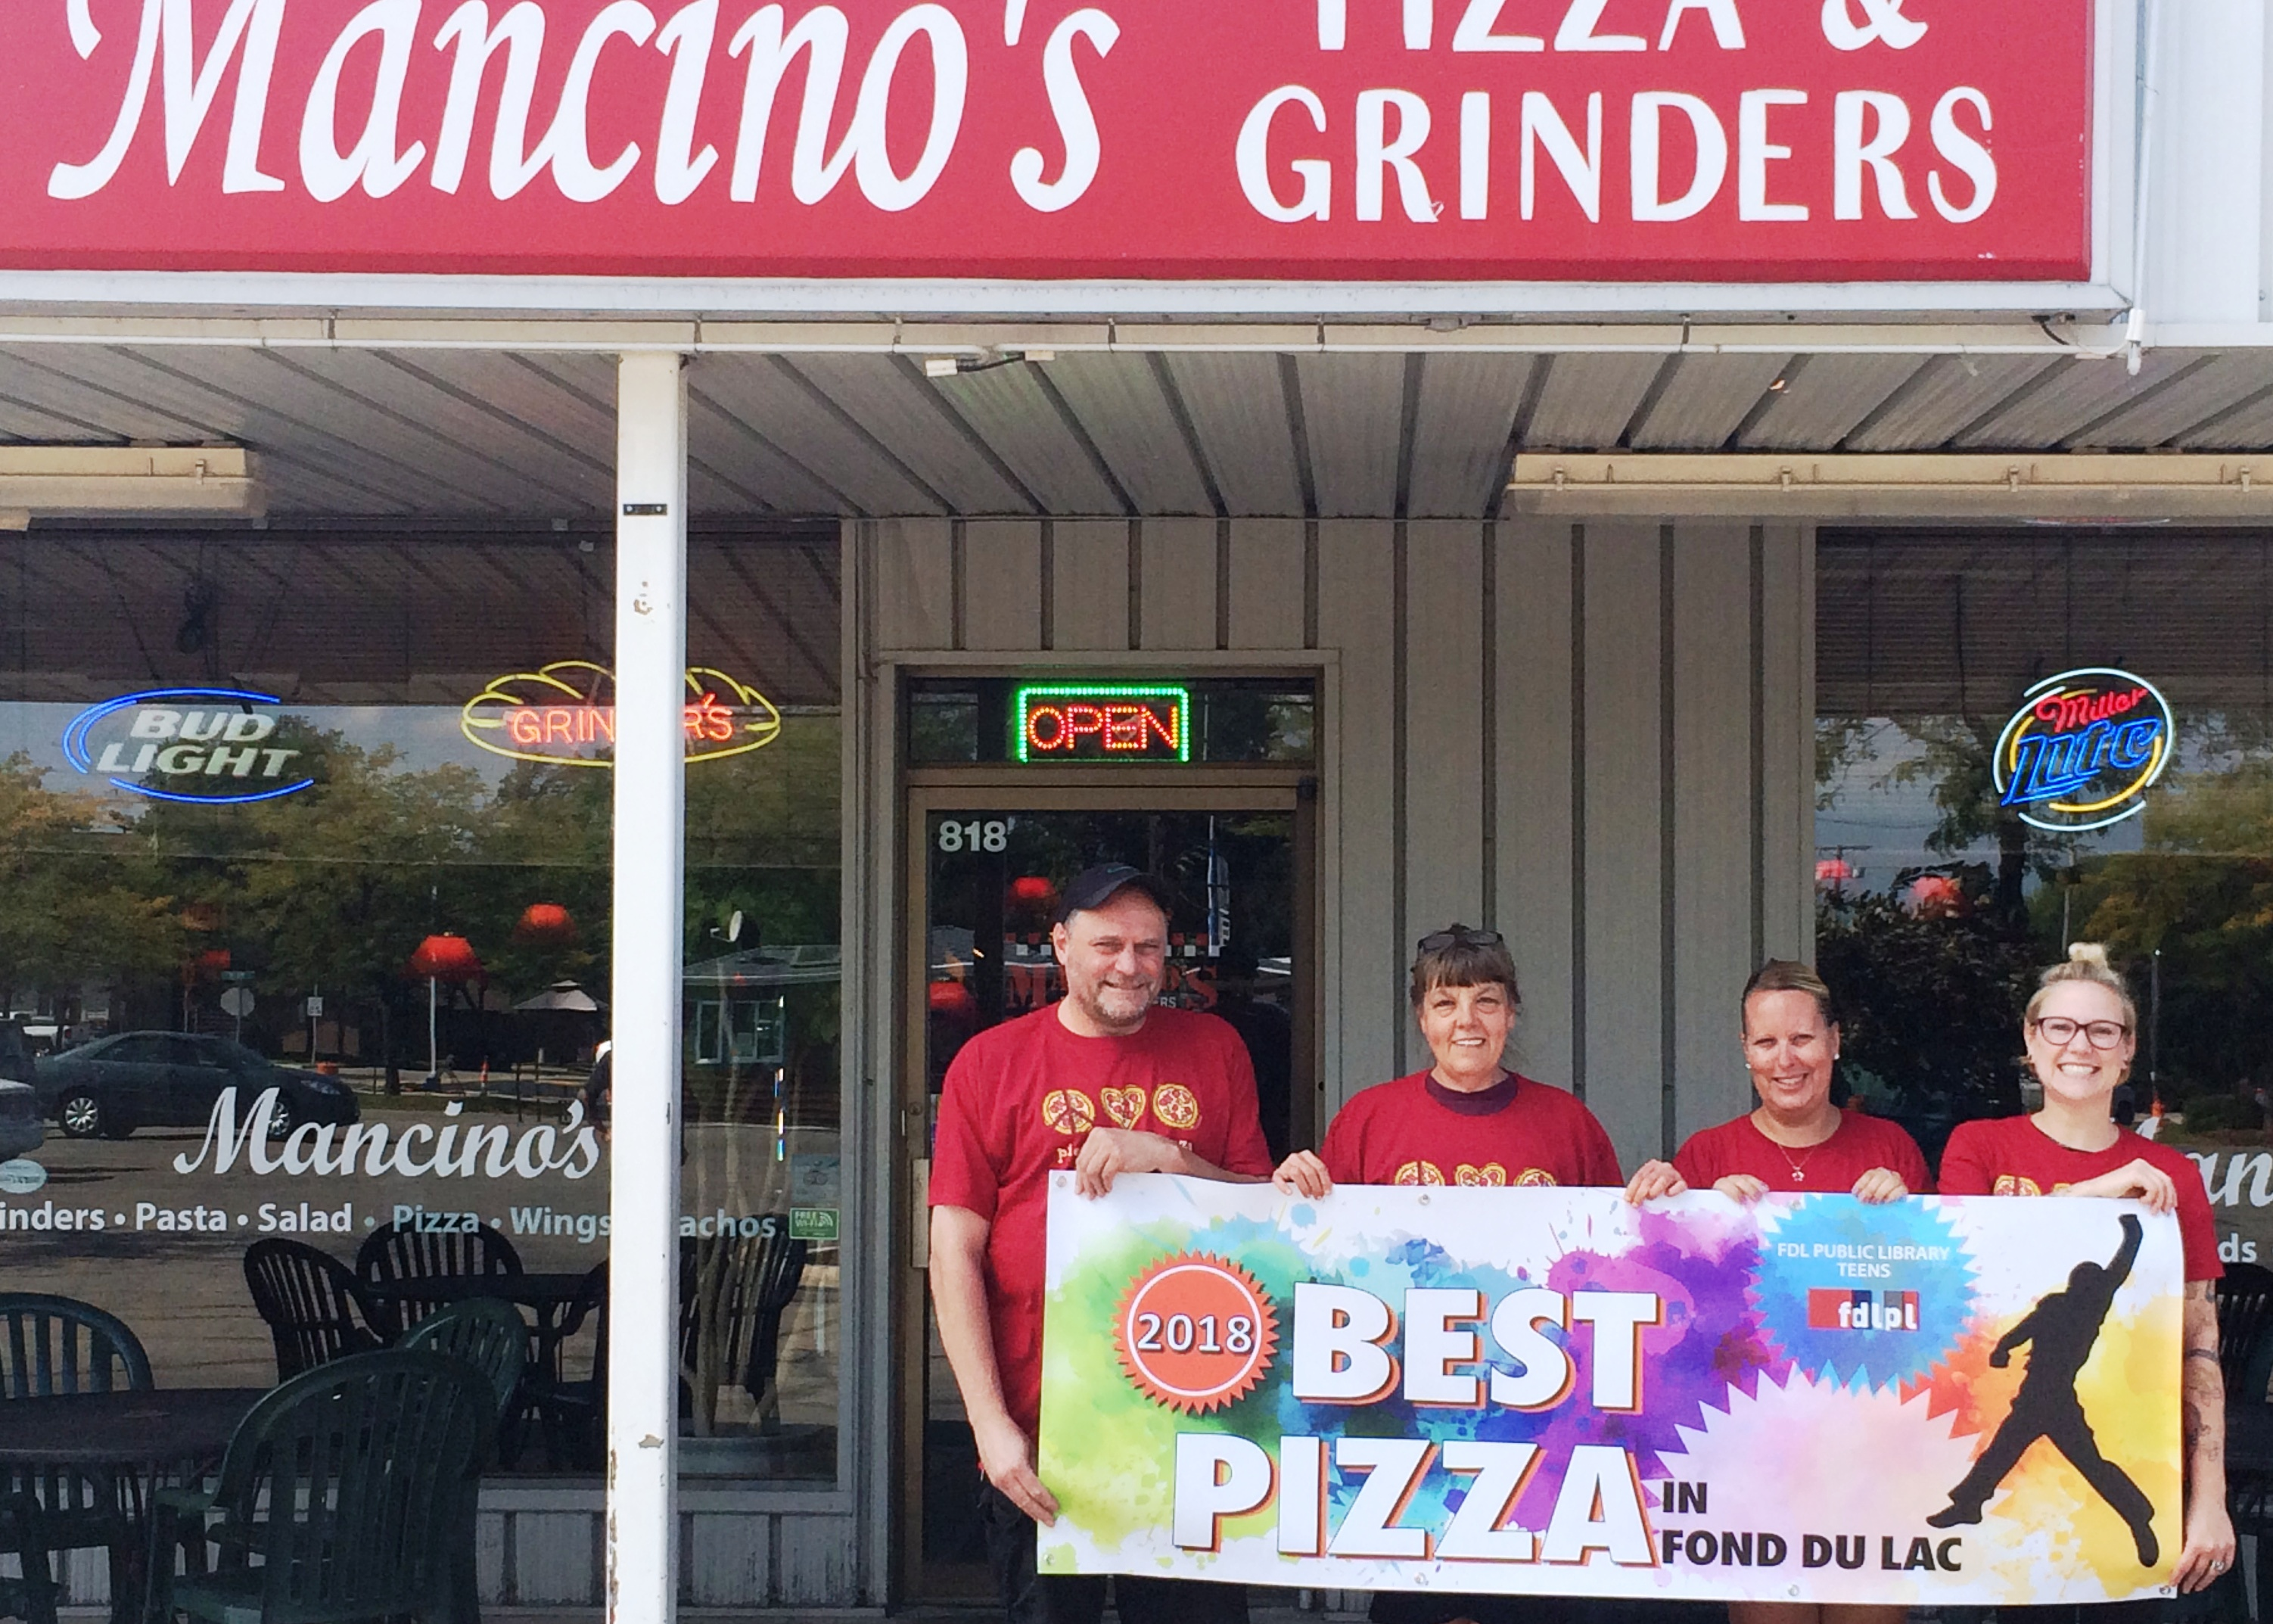 Mancino's chosen best Best Pizza